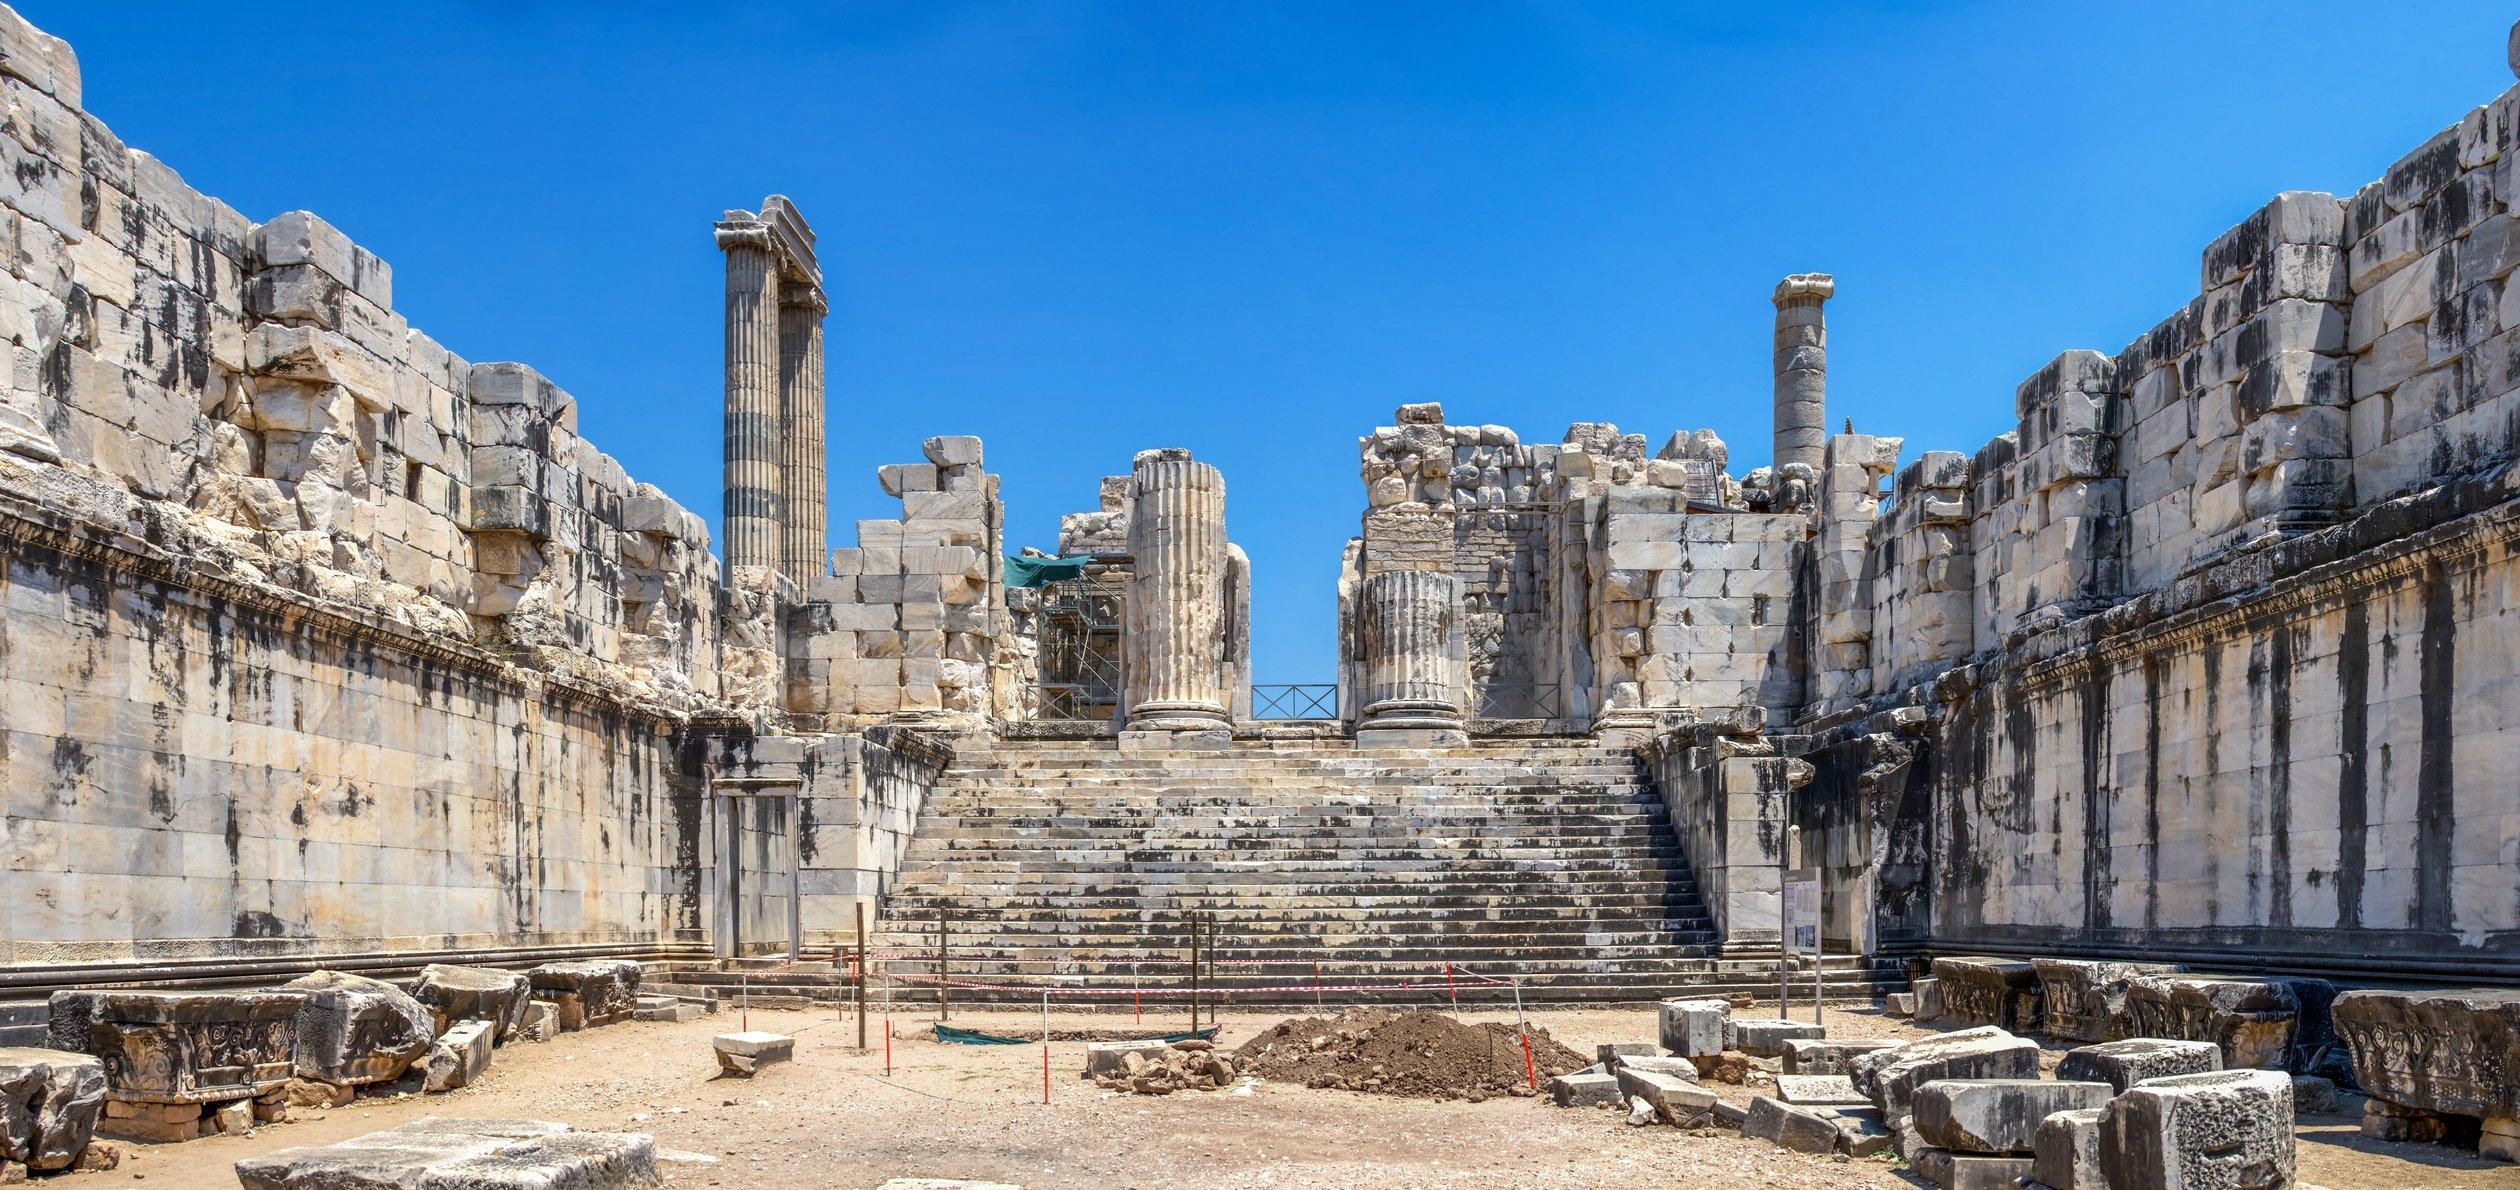 The ruins of the Temple of Apollo at Side, Antalya, southern Turkey. (iStock Photo)